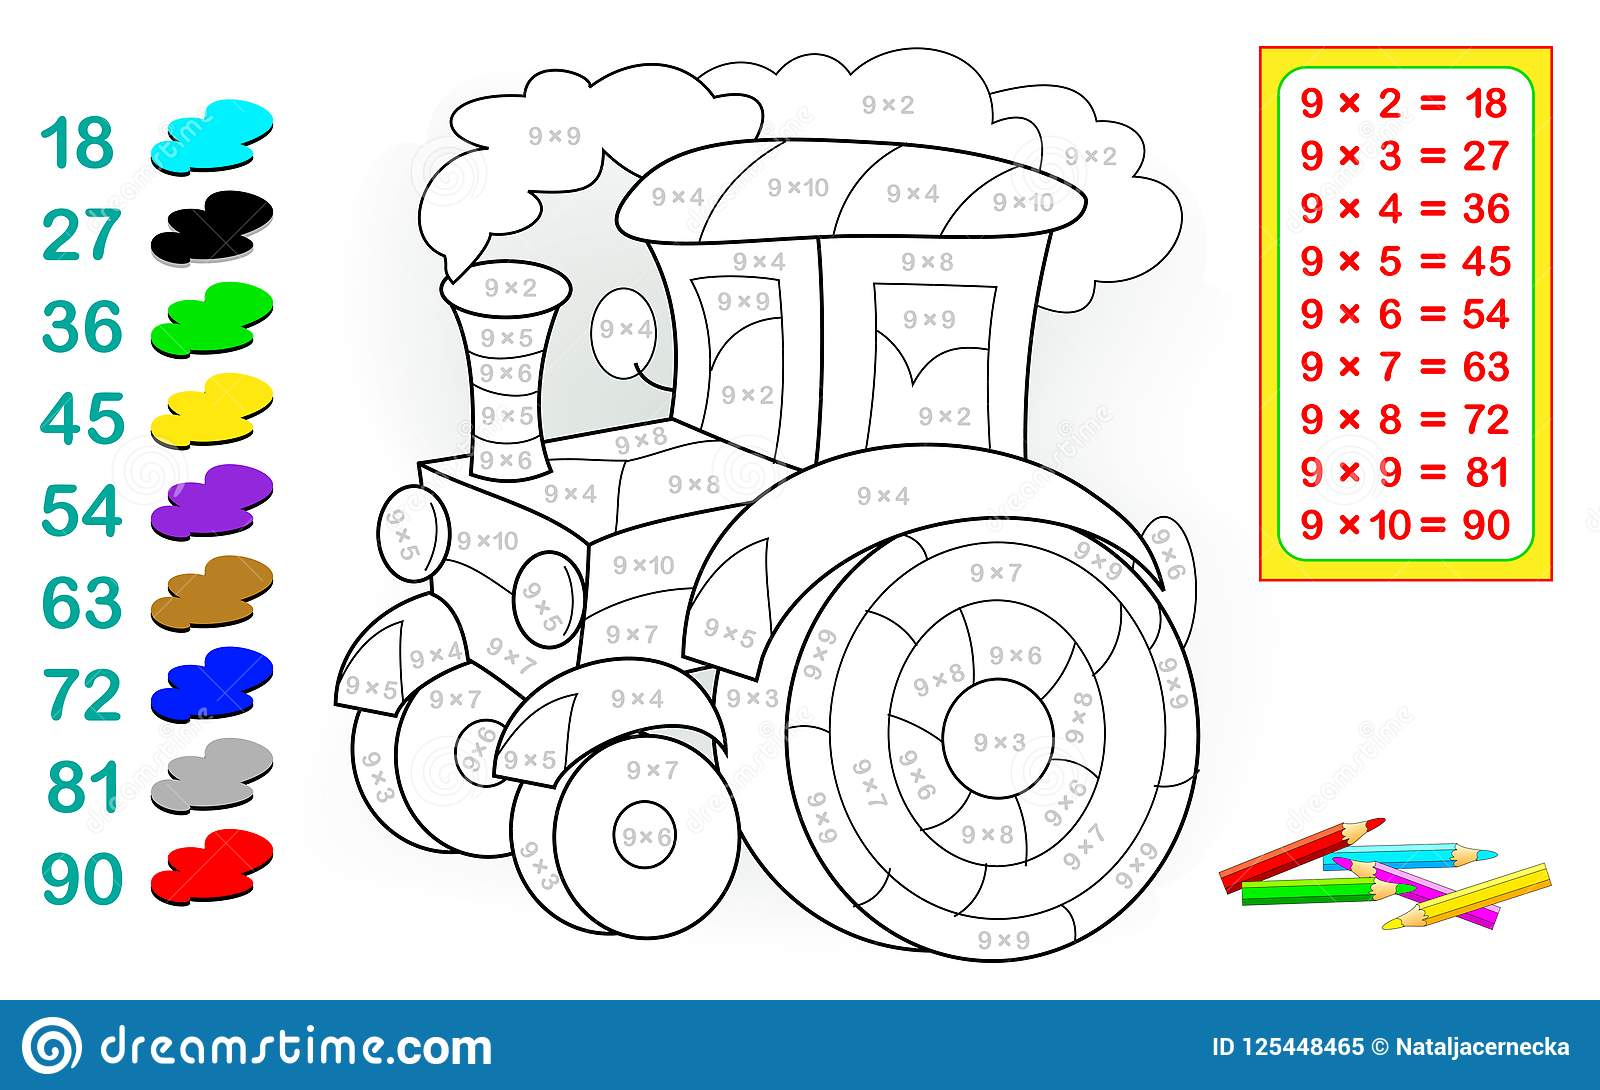 Worksheet With Exercises For Children With Multiplication